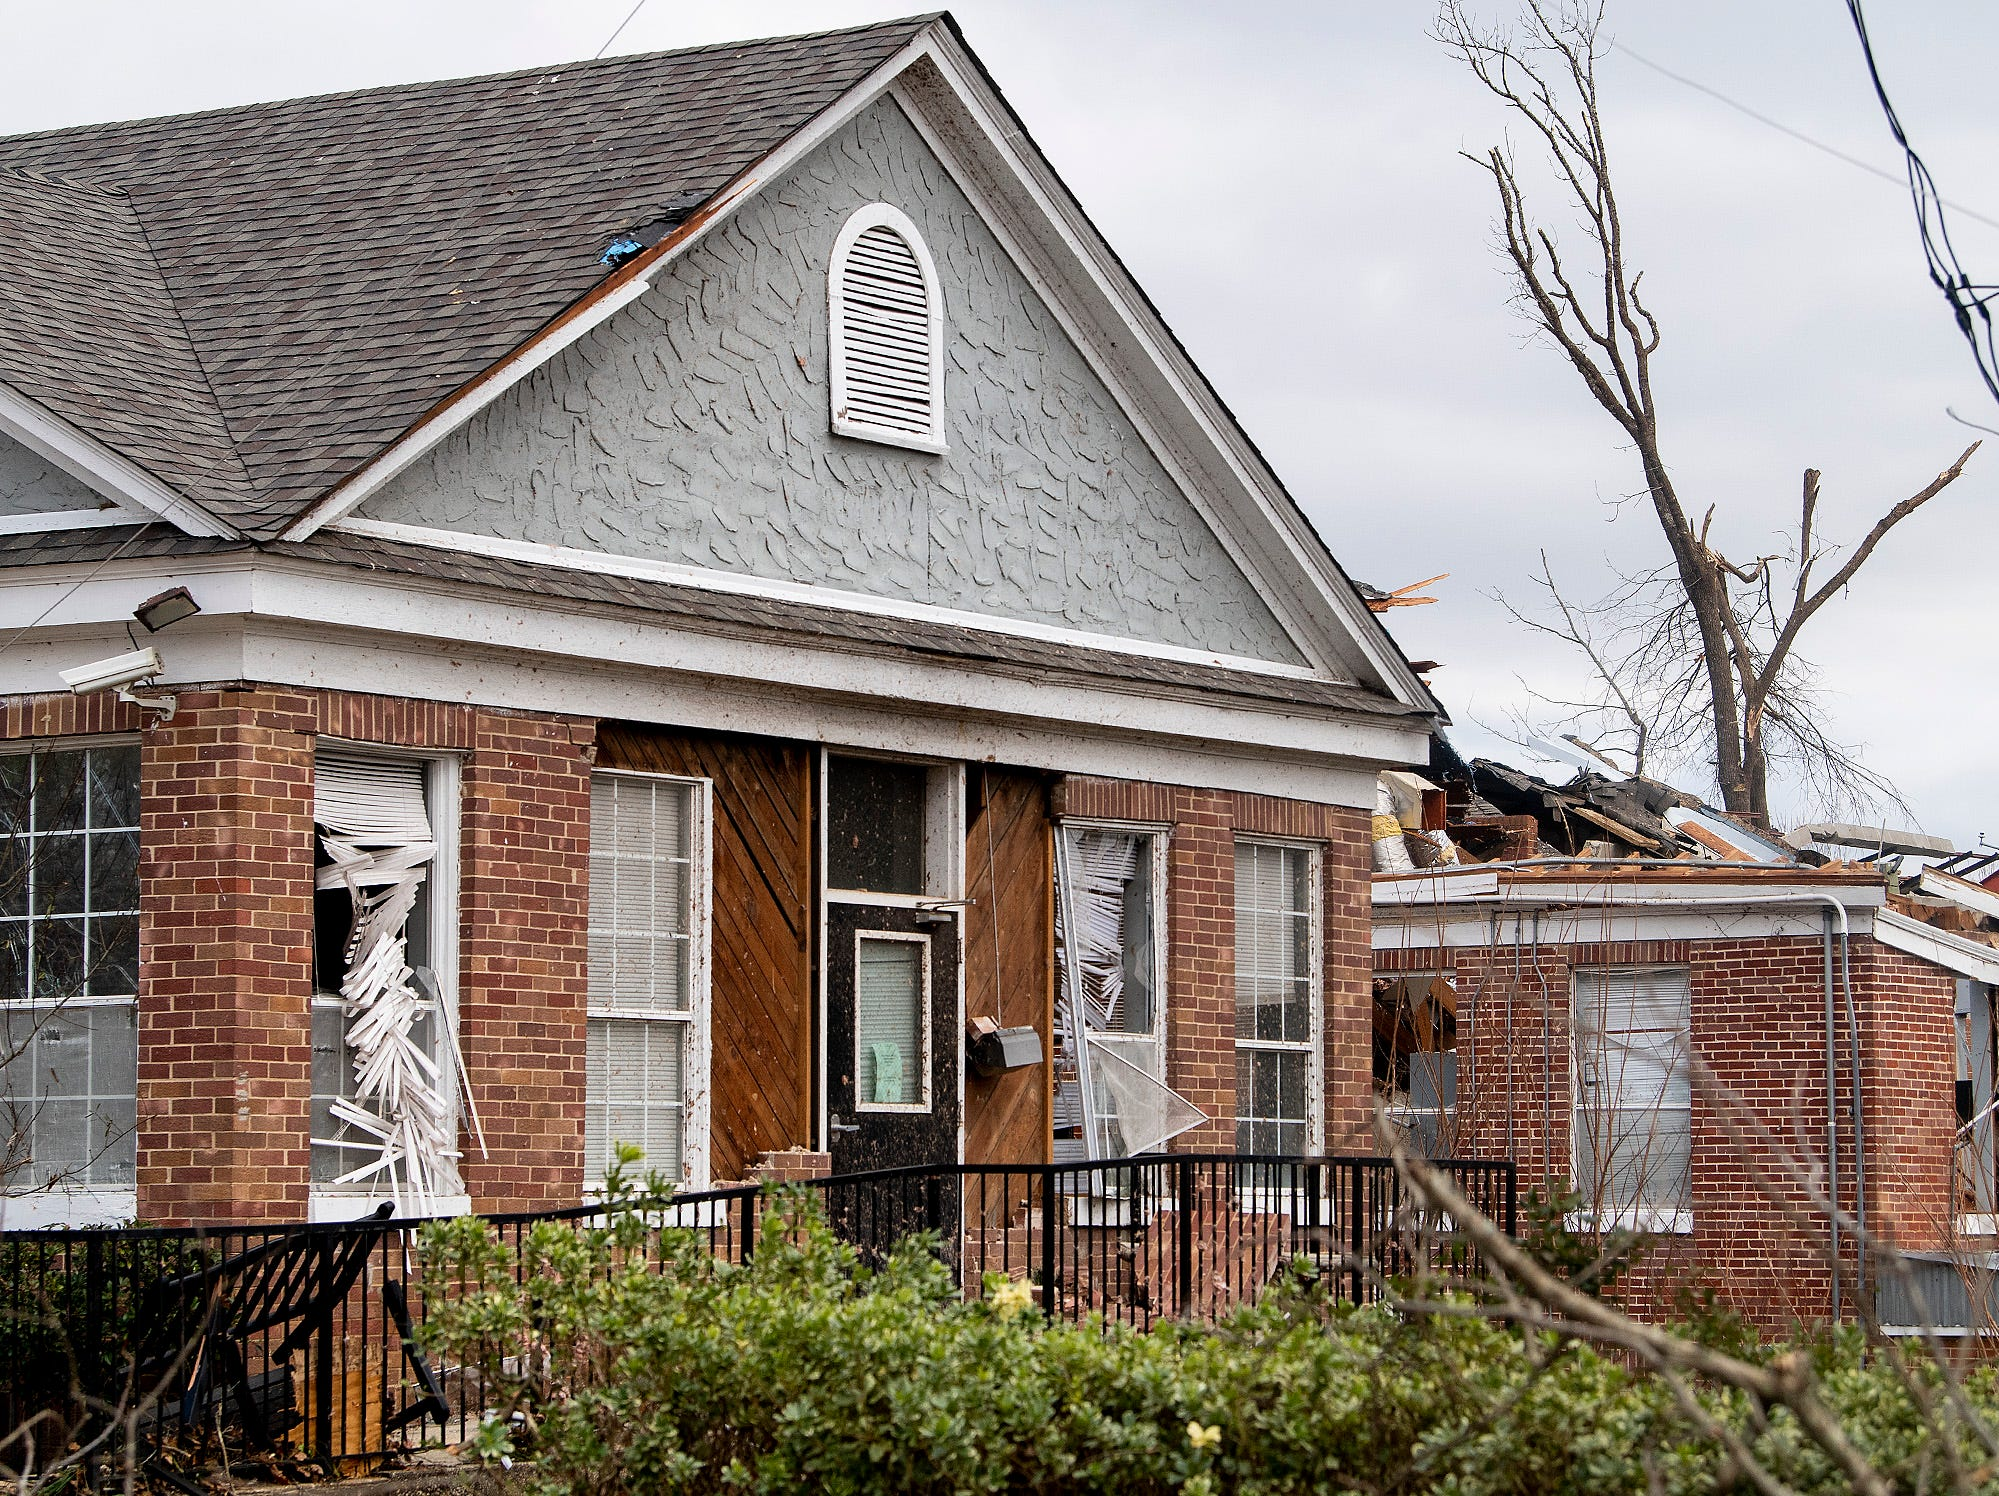 The Wetumpka Police Department building on Sunday January 20, 2019, after a tornado hit Wetumpka, Ala., on Saturday afternoon.